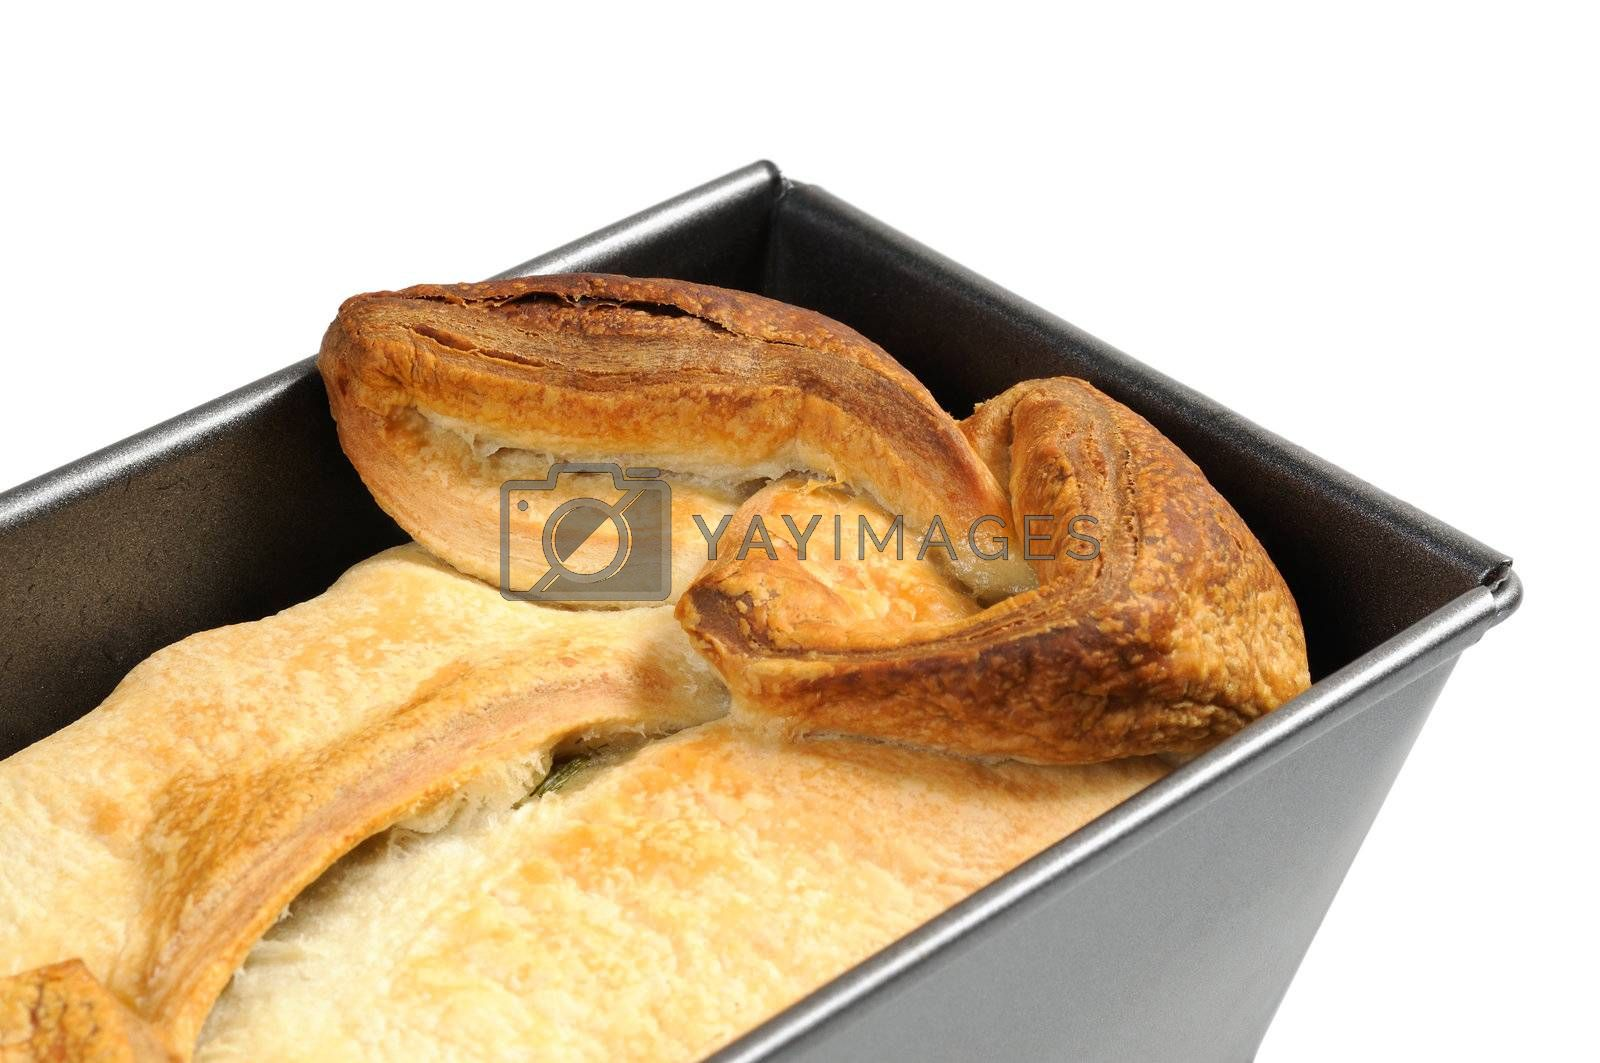 Bakery of puff pastry in the metallic form. Isolated on white background.